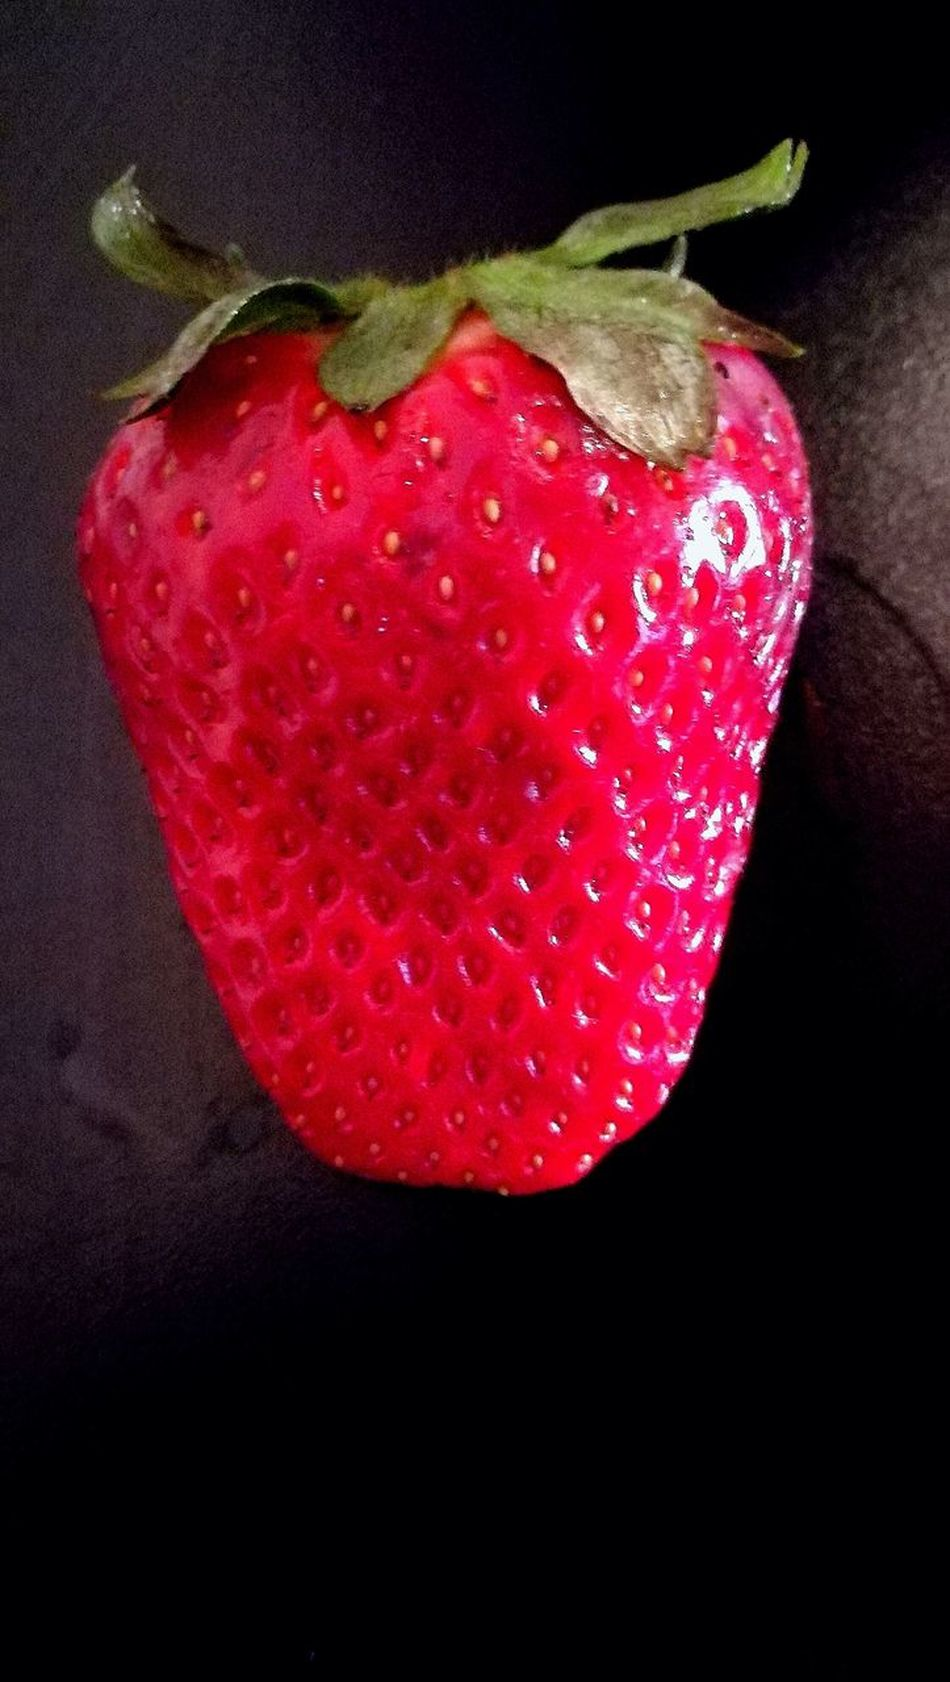 EyeEmNewHere Strawberry EyeEmNewHere EyeEm Diversity Nature Evergreen Lizard Nature